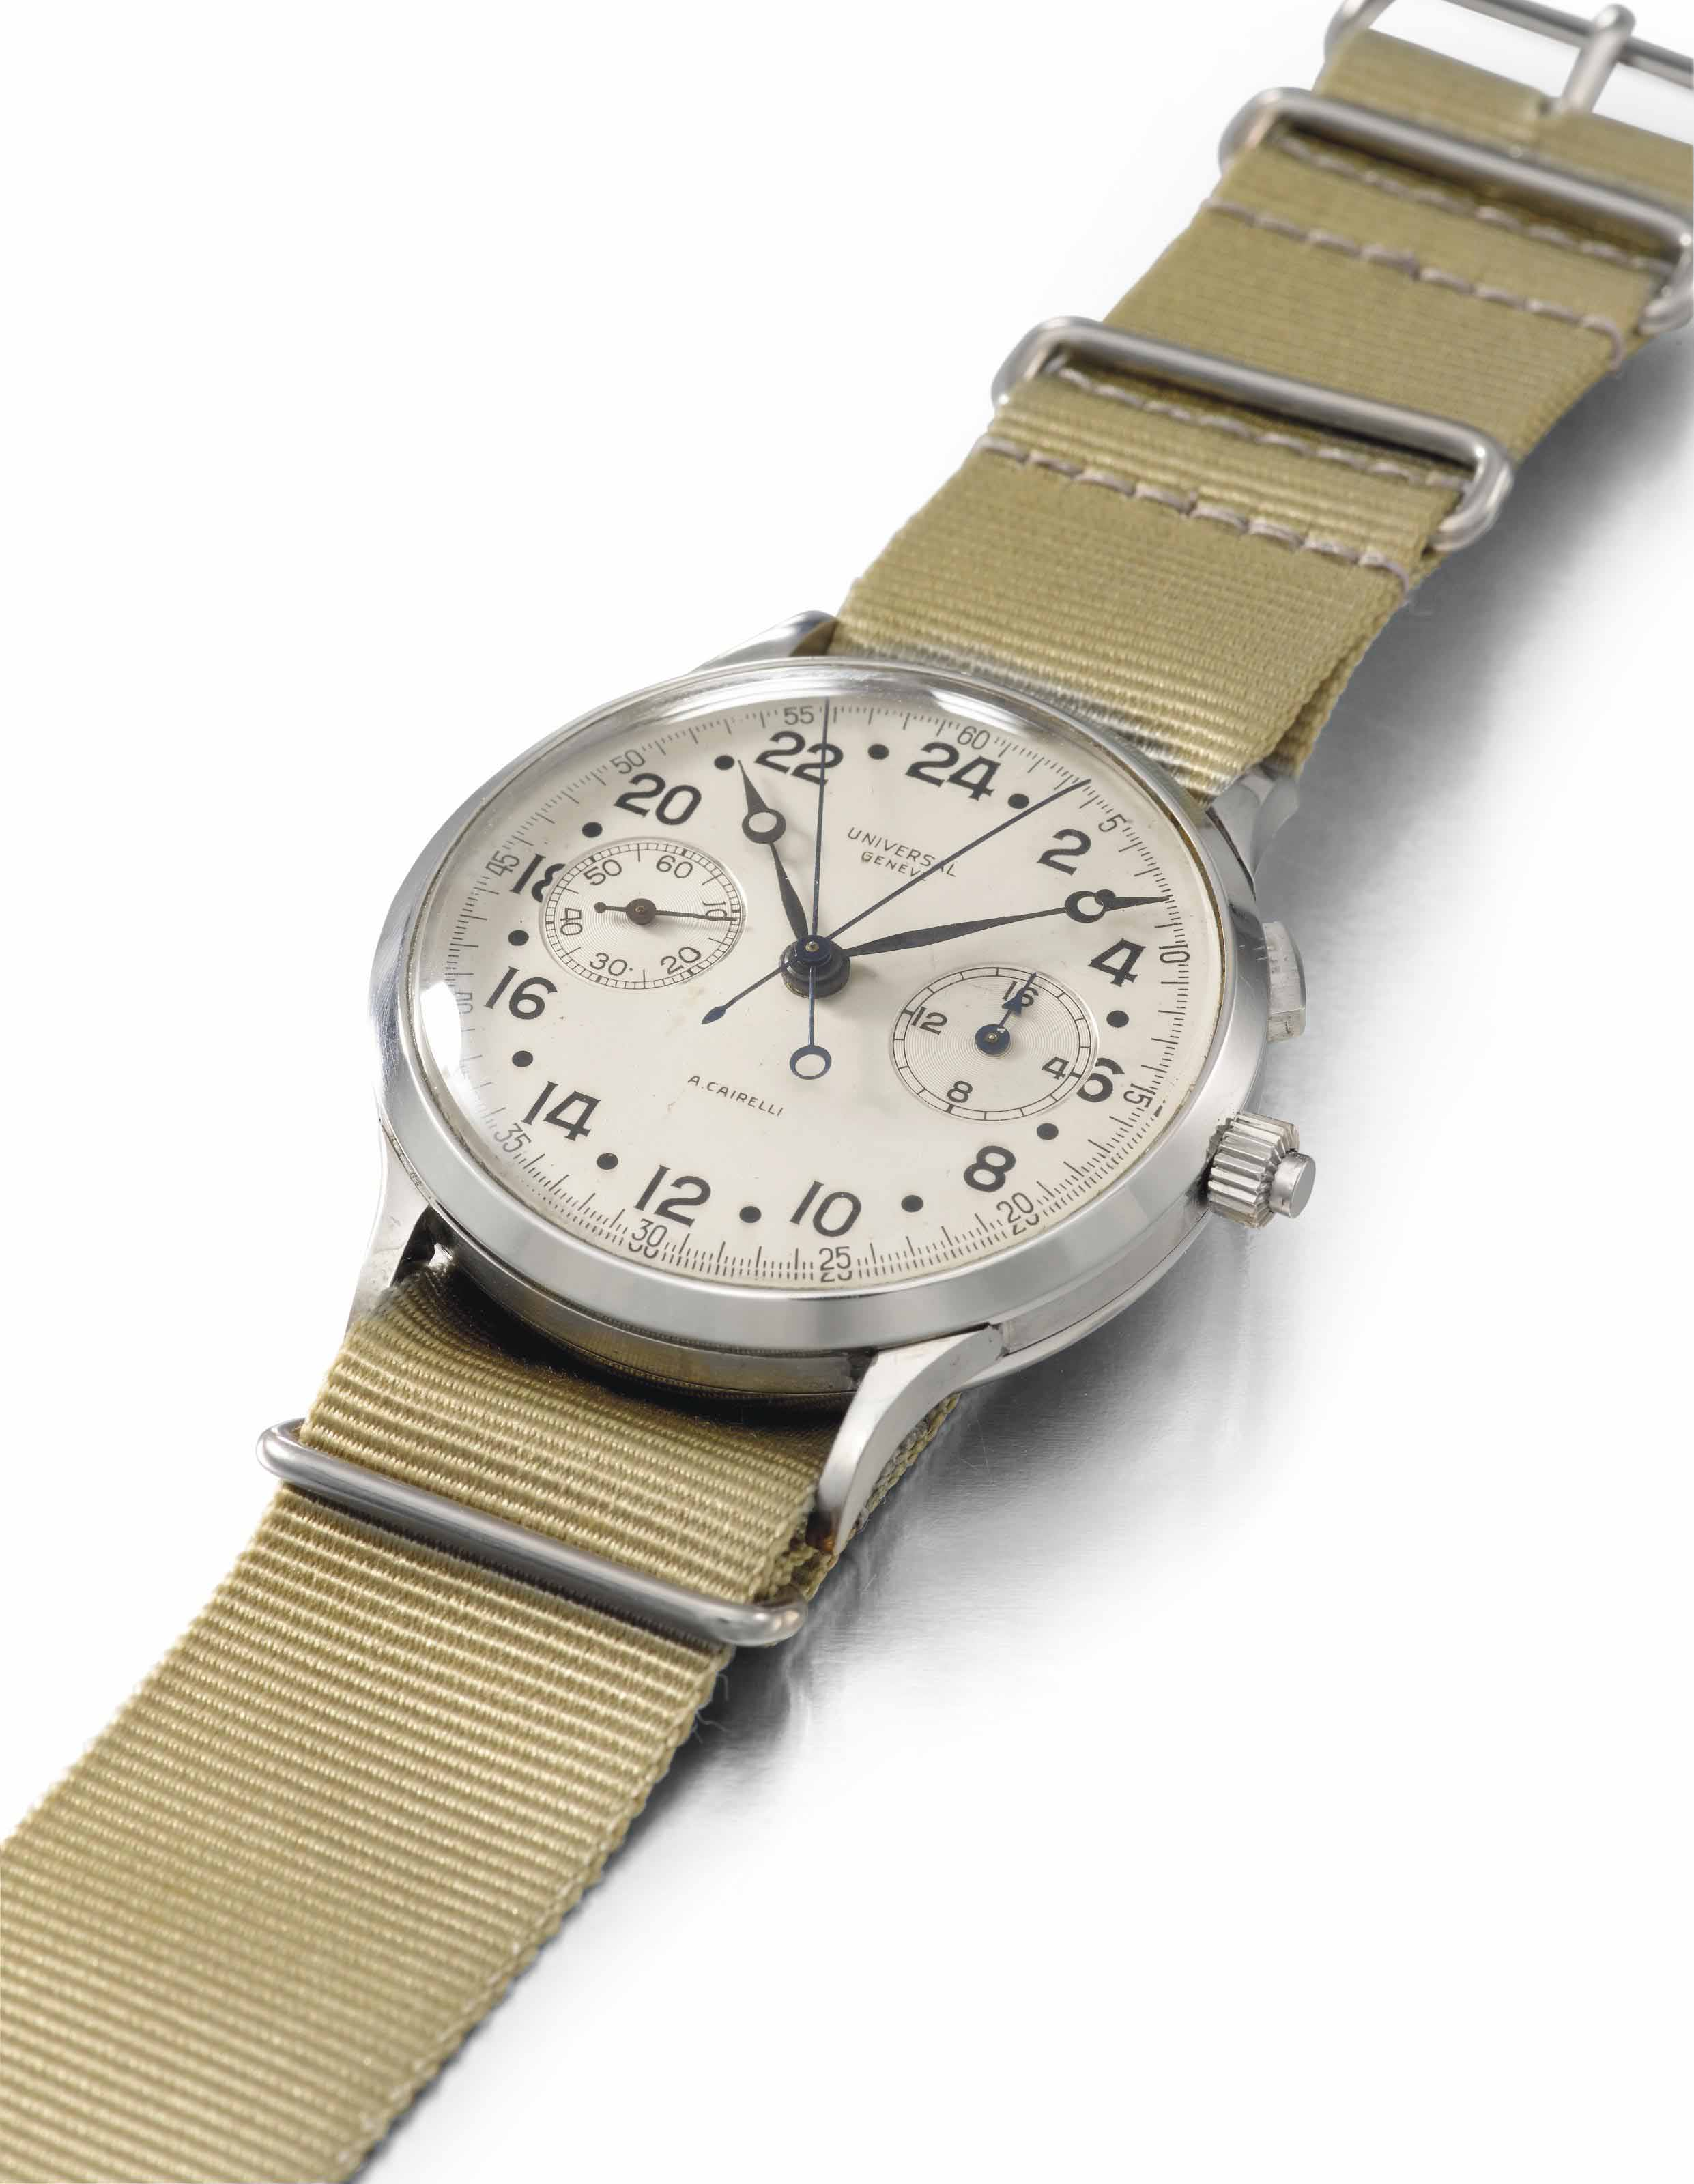 Universal. A unusual and very rare oversized stainless steel split seconds chronograph wristwatch with 24 hour dial